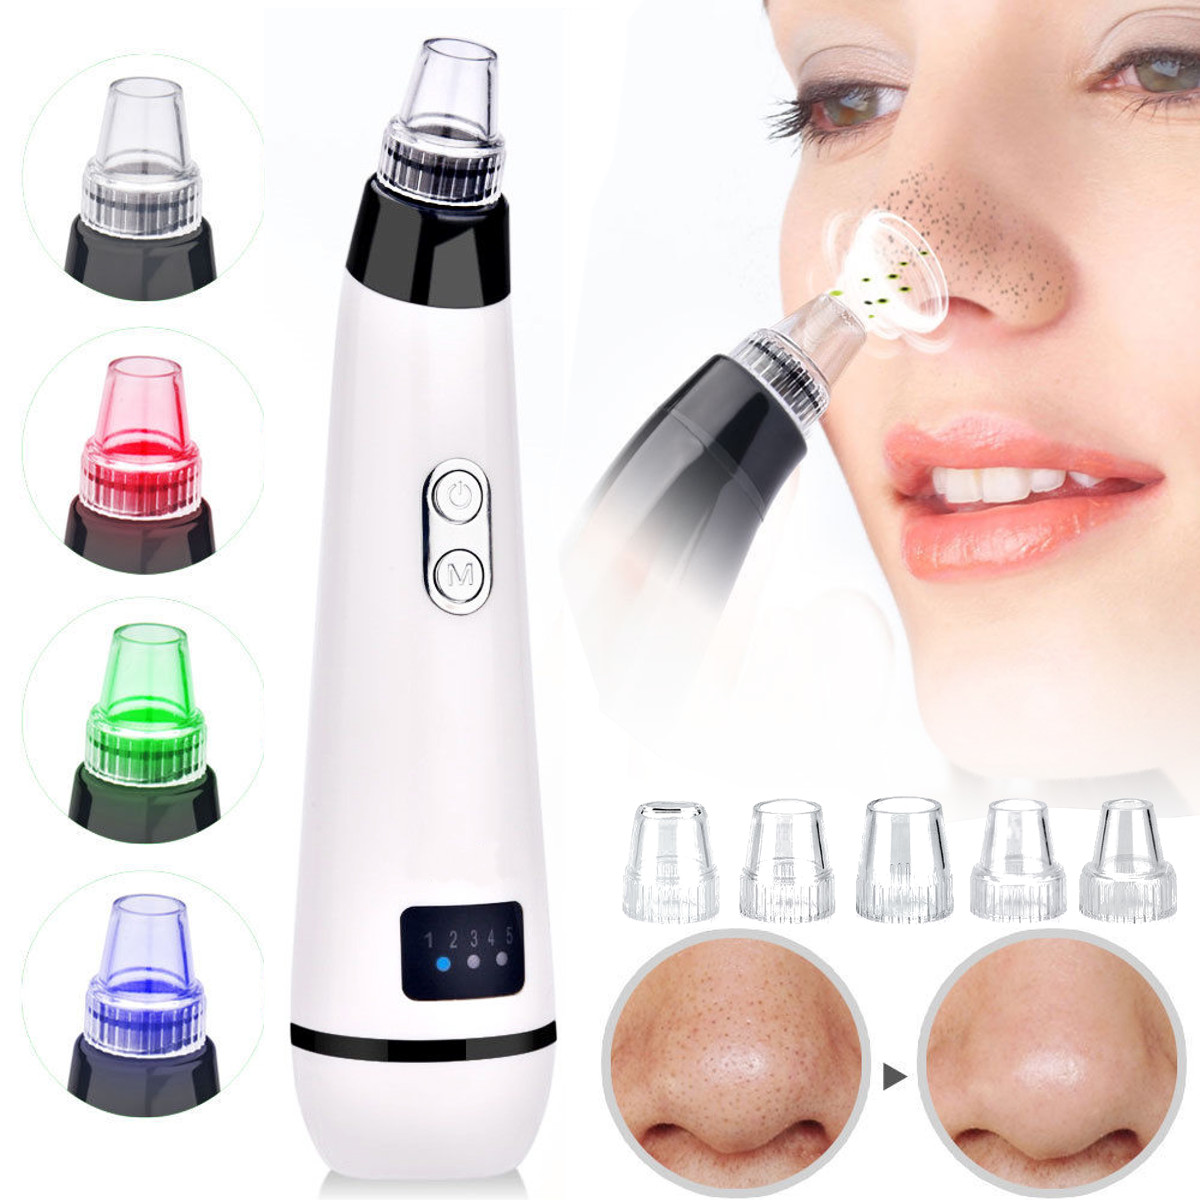 Electric-Facial-Pore-Blackhead-Removal-5-Vacuum-Suction-Cleaner-Machine-Beauty